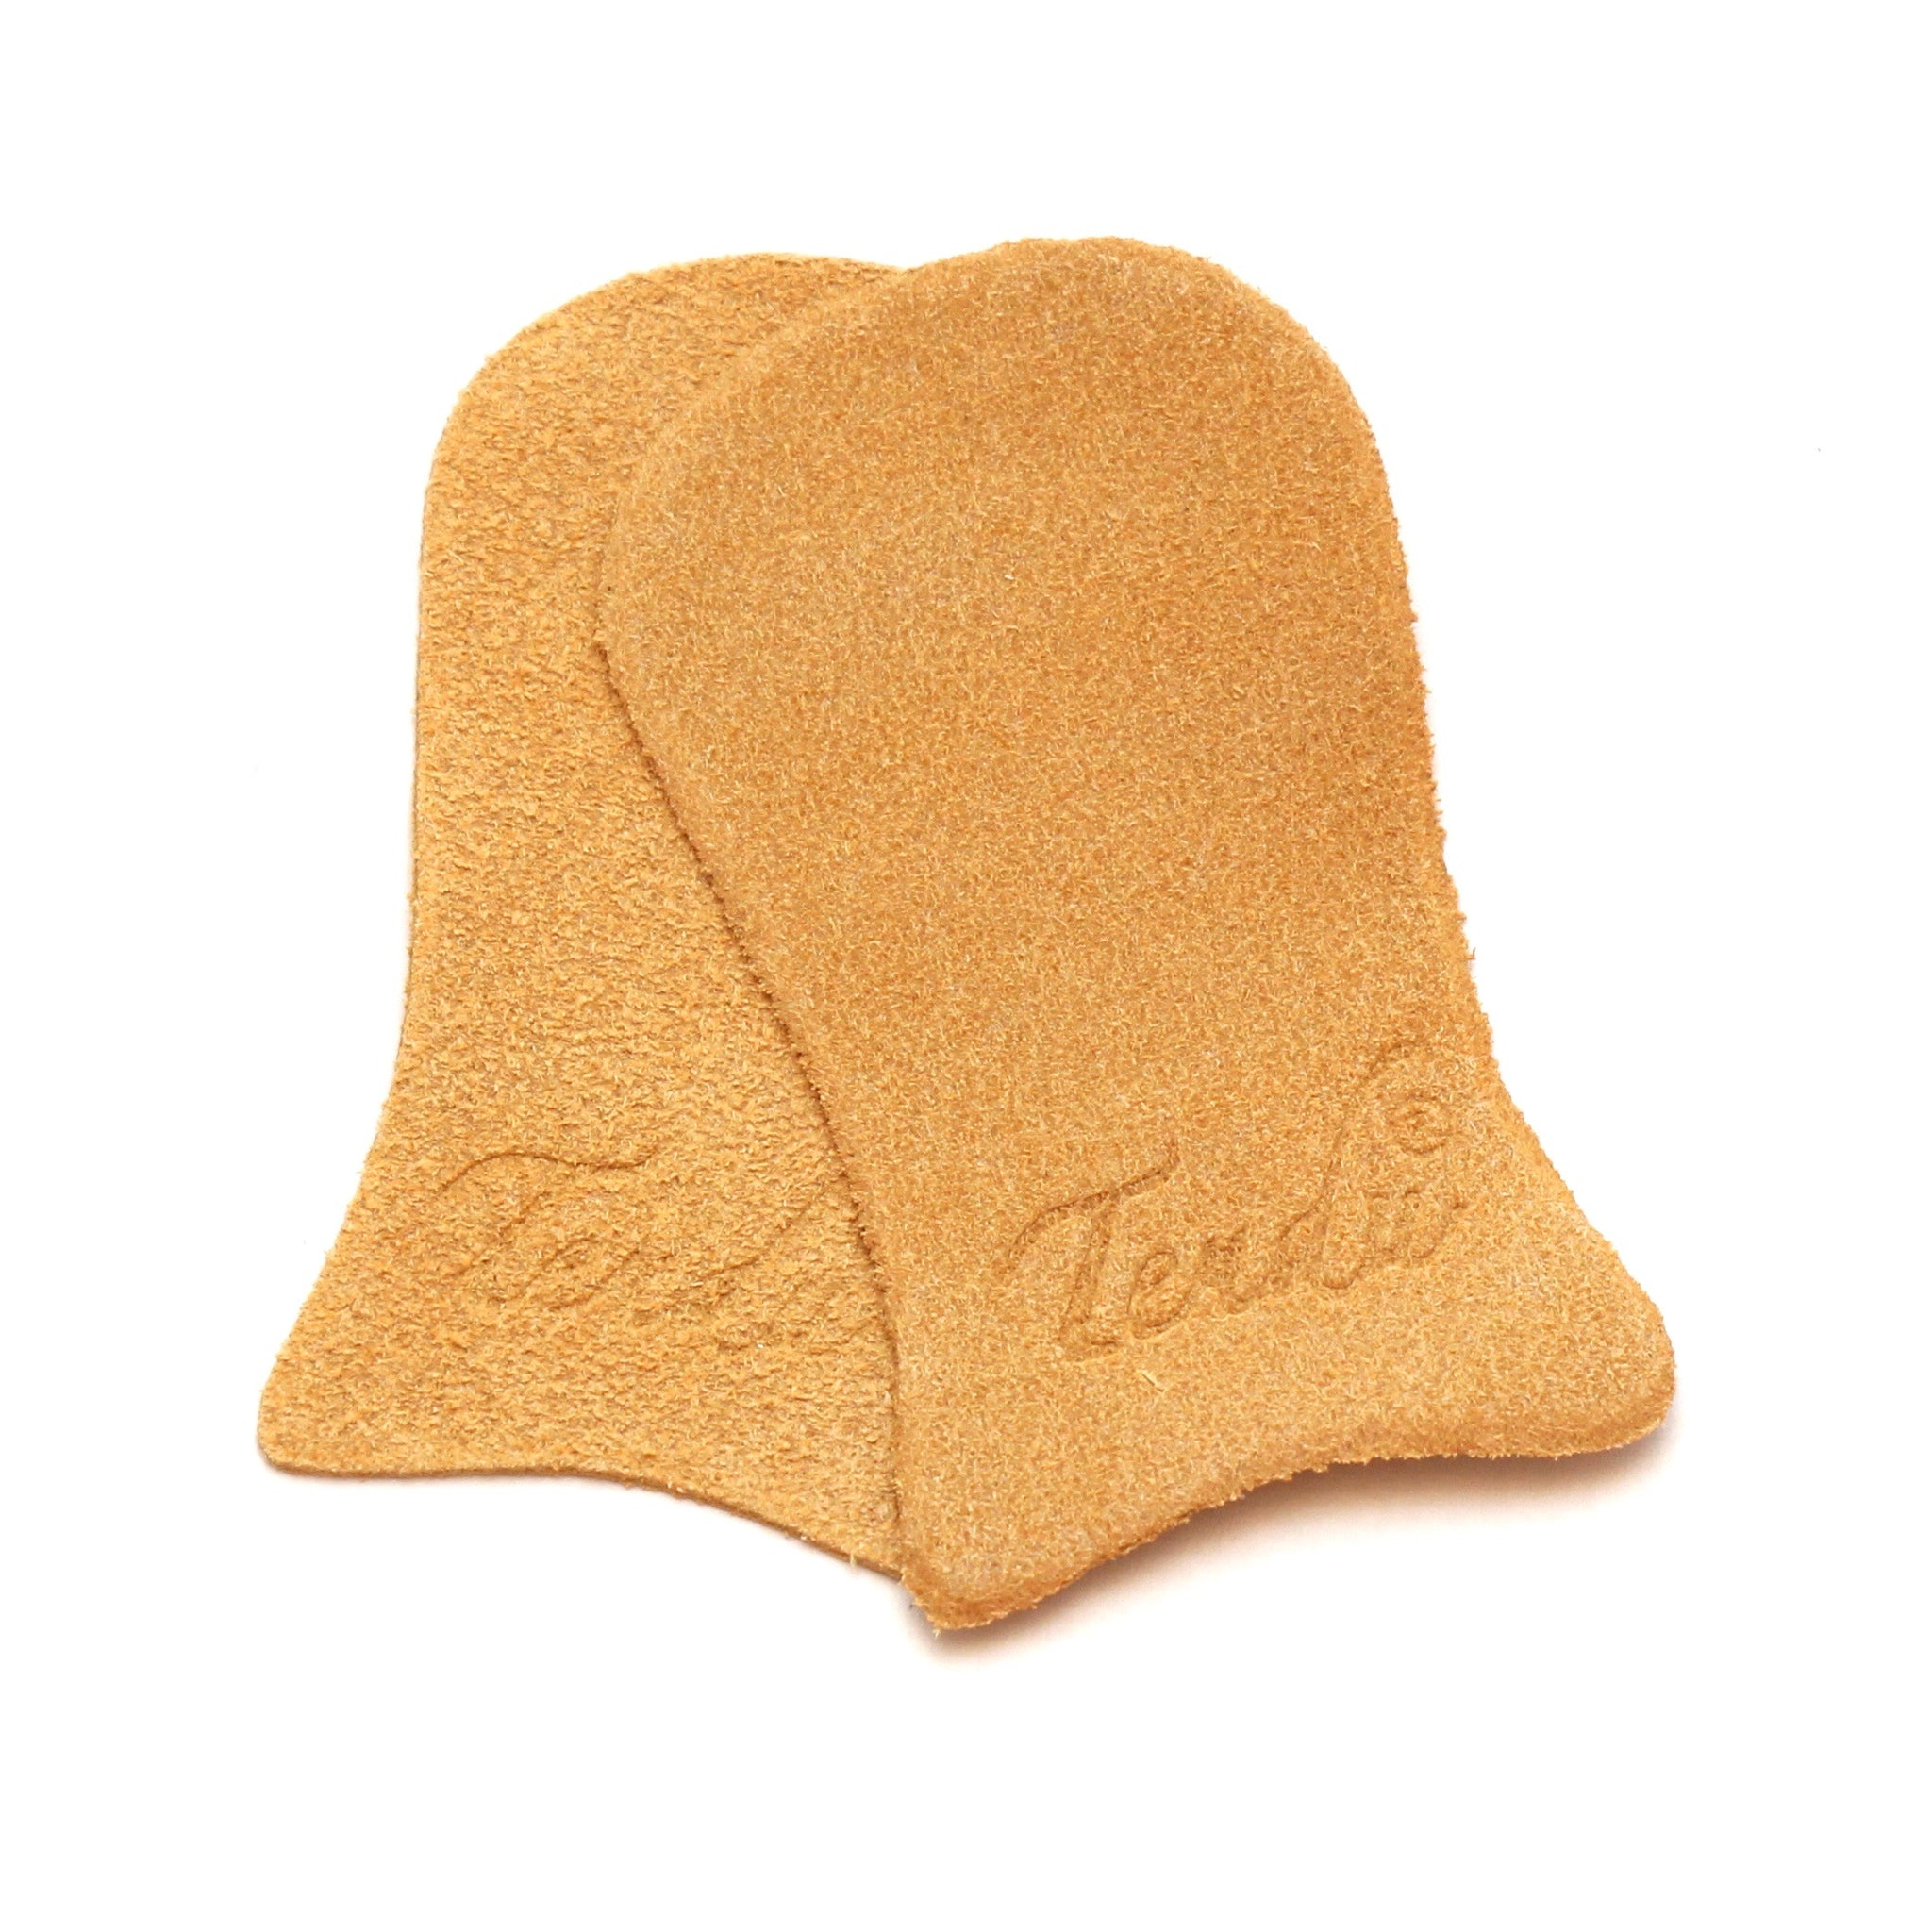 Tendu Pointe Shoe Tips - Suede (pair) - PSST